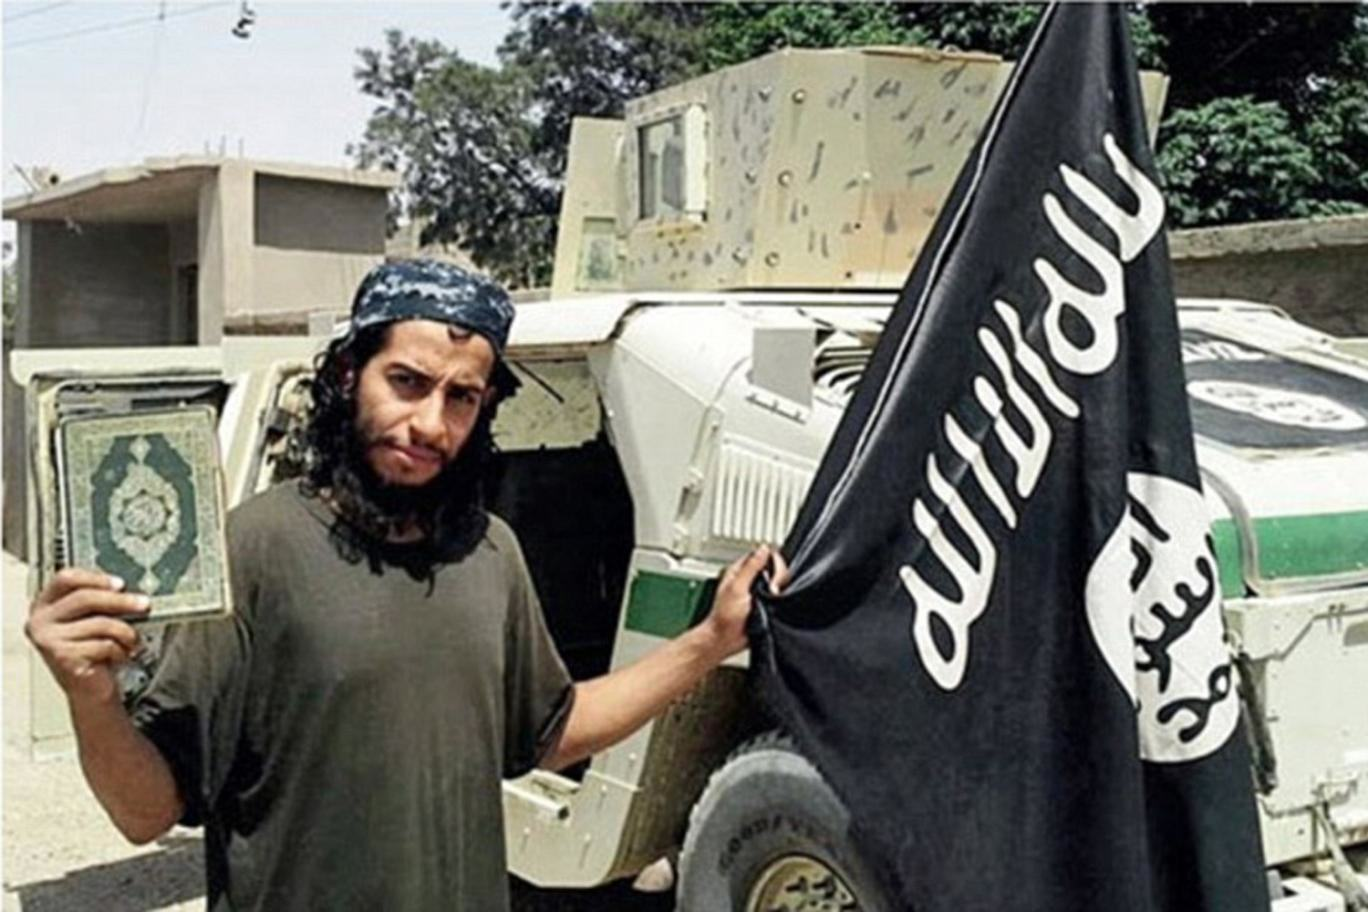 Paris Attacks: Plot Leader Travelled To UK To Meet With Terror Suspects Reuters